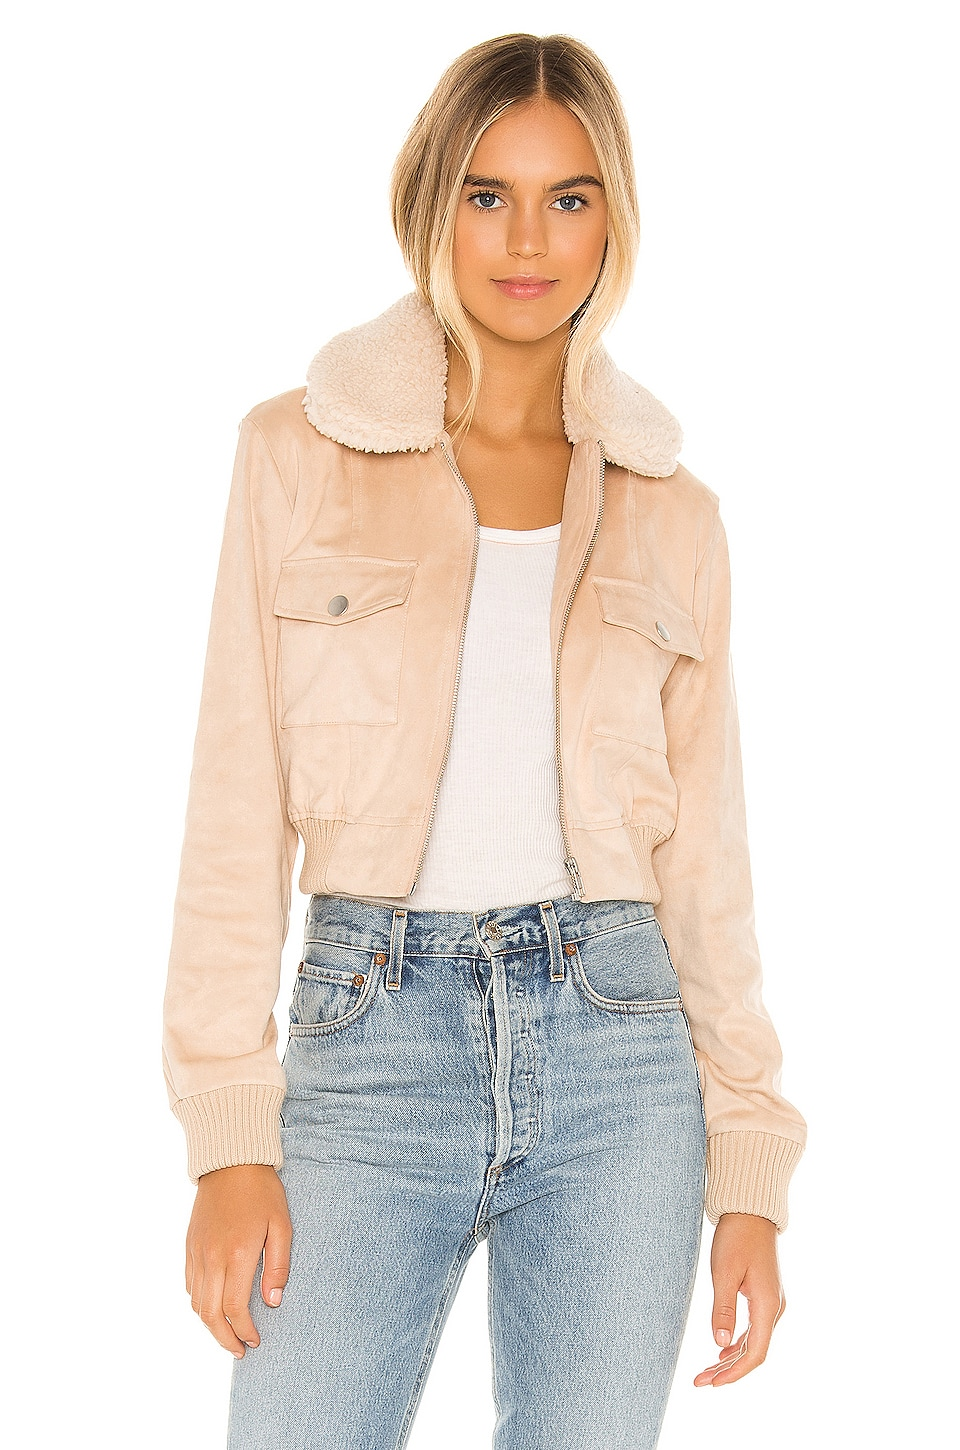 MAJORELLE Dani Jacket in Beige